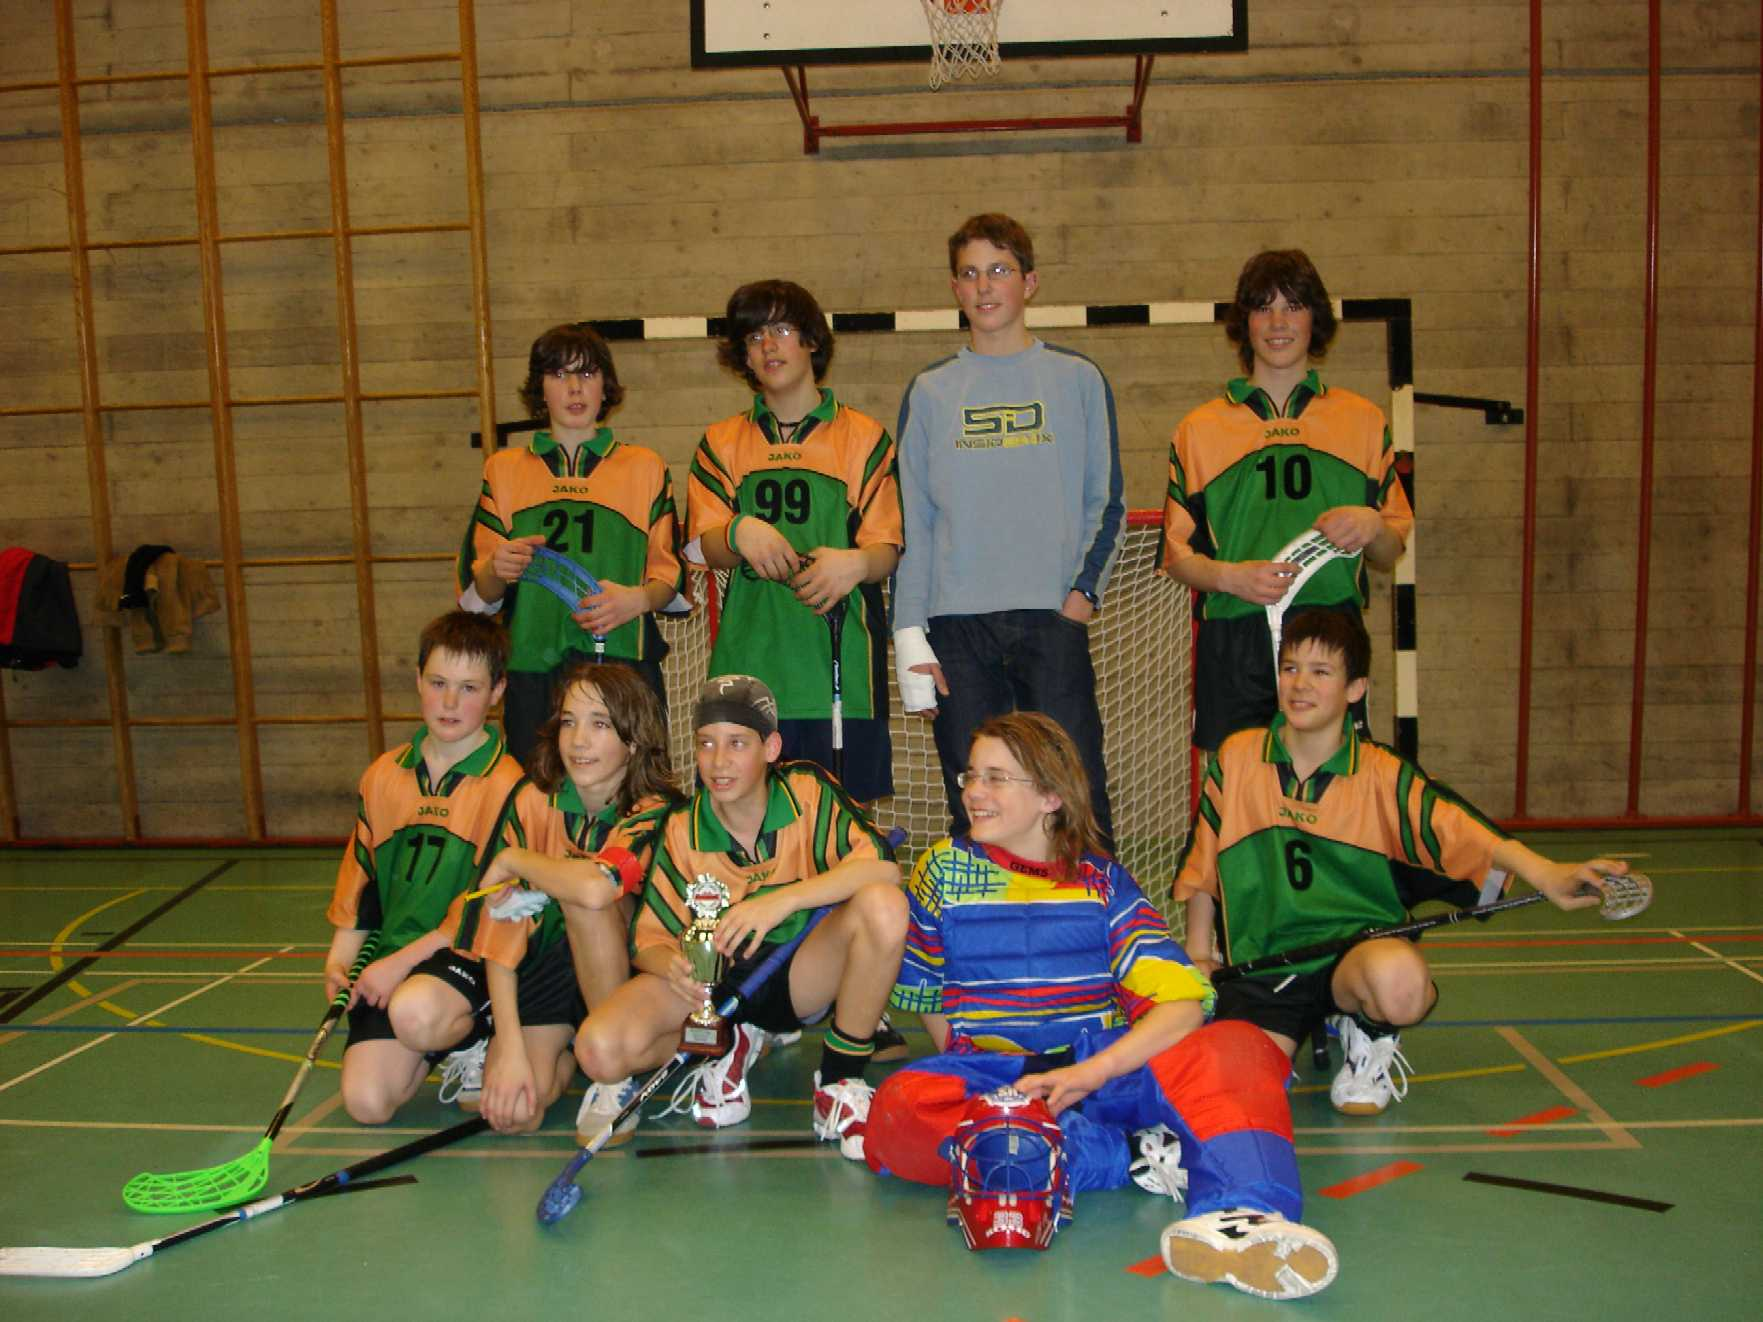 Junioren C (Saison 2004/2005)